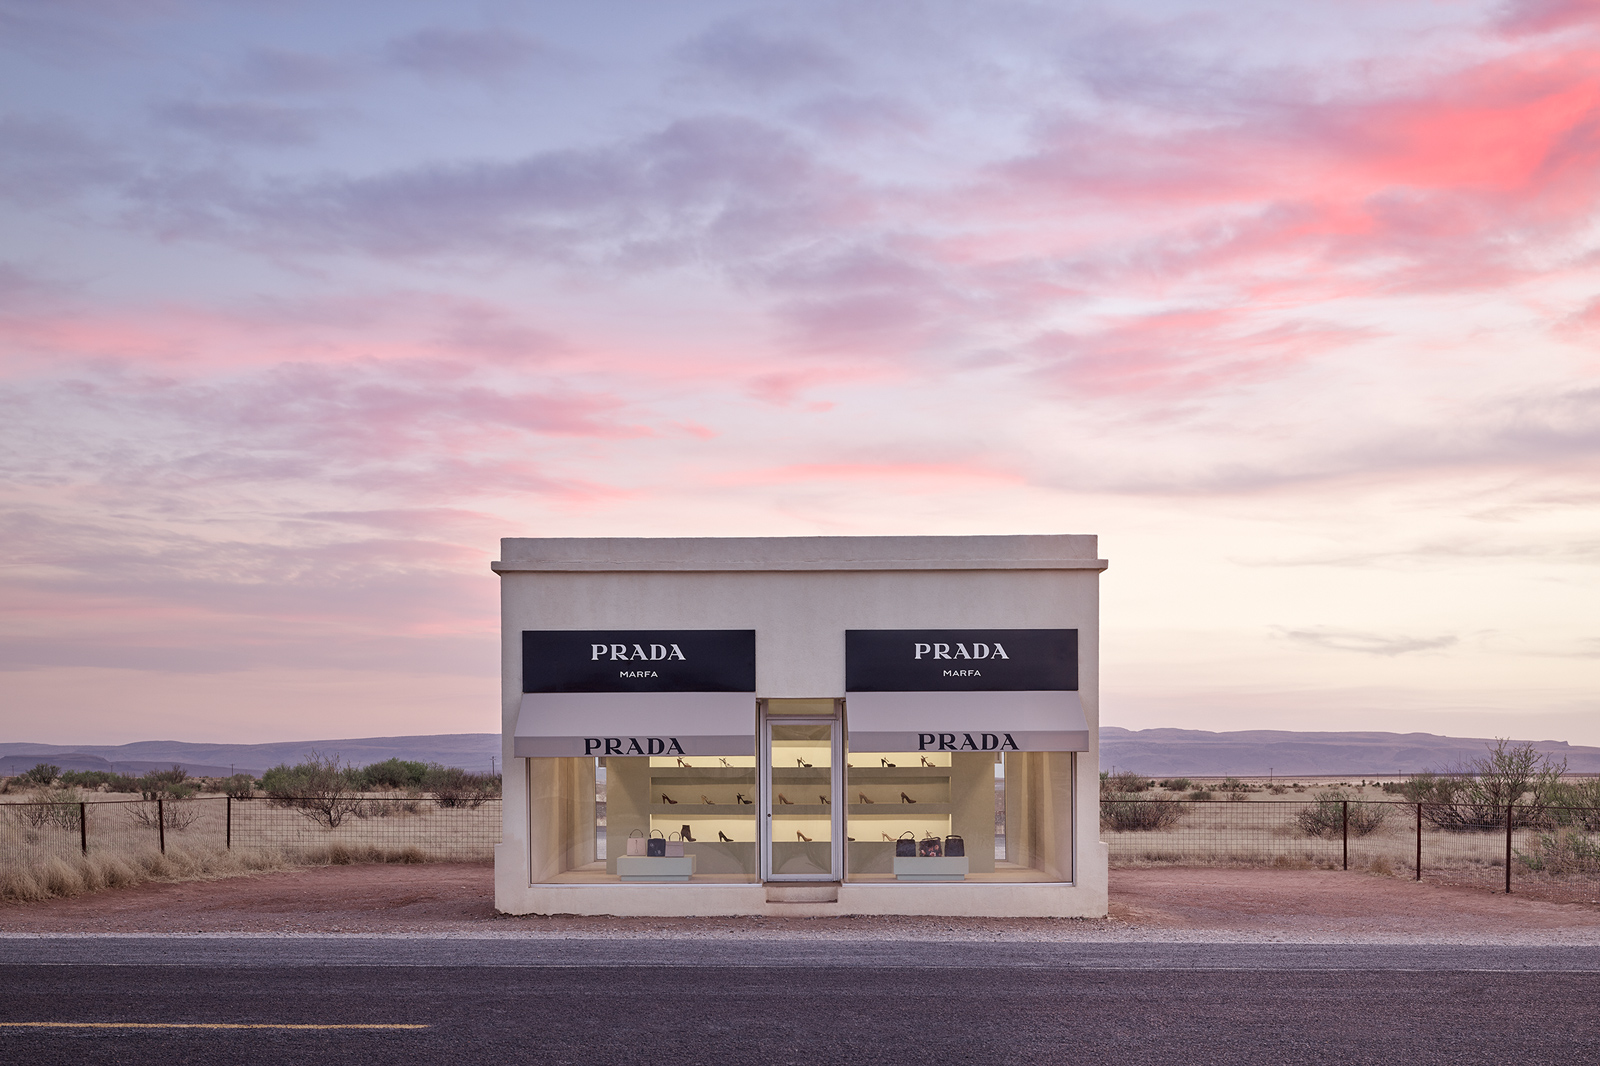 prada marfa Lumas gallery review discount code coupon code